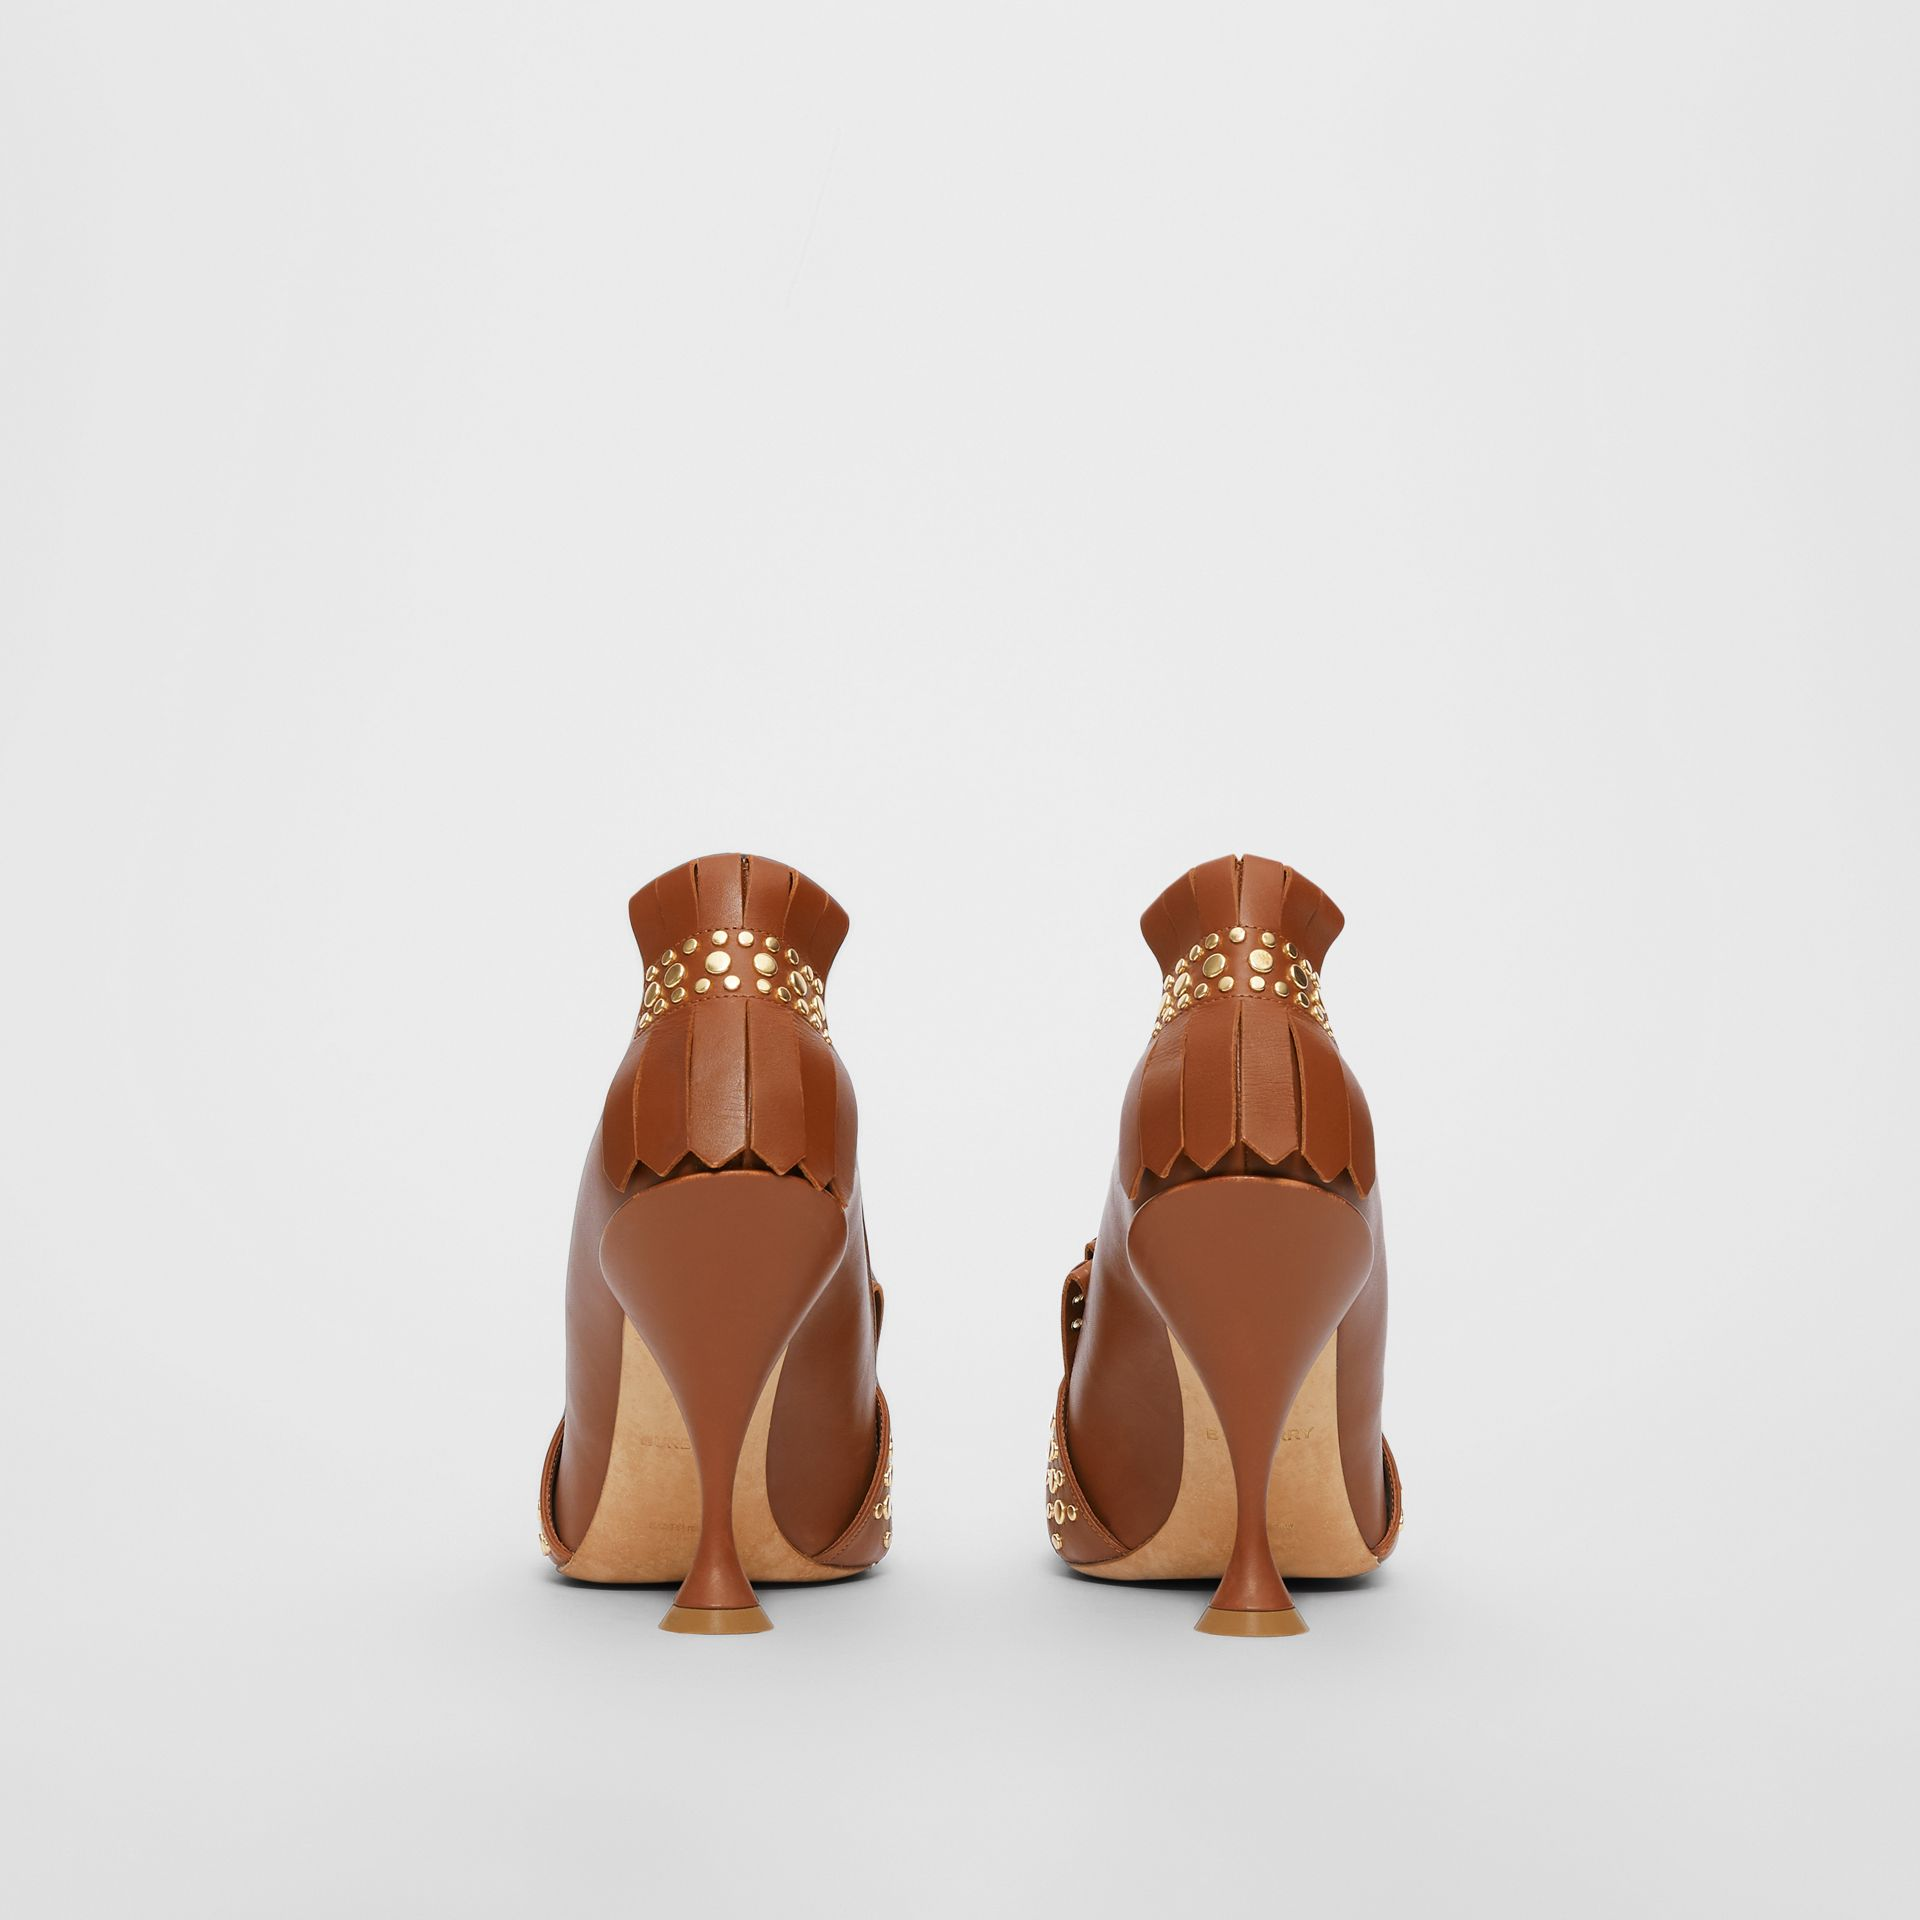 Studded Kiltie Fringe Leather Point-toe Pumps in Tan - Women | Burberry United Kingdom - gallery image 4